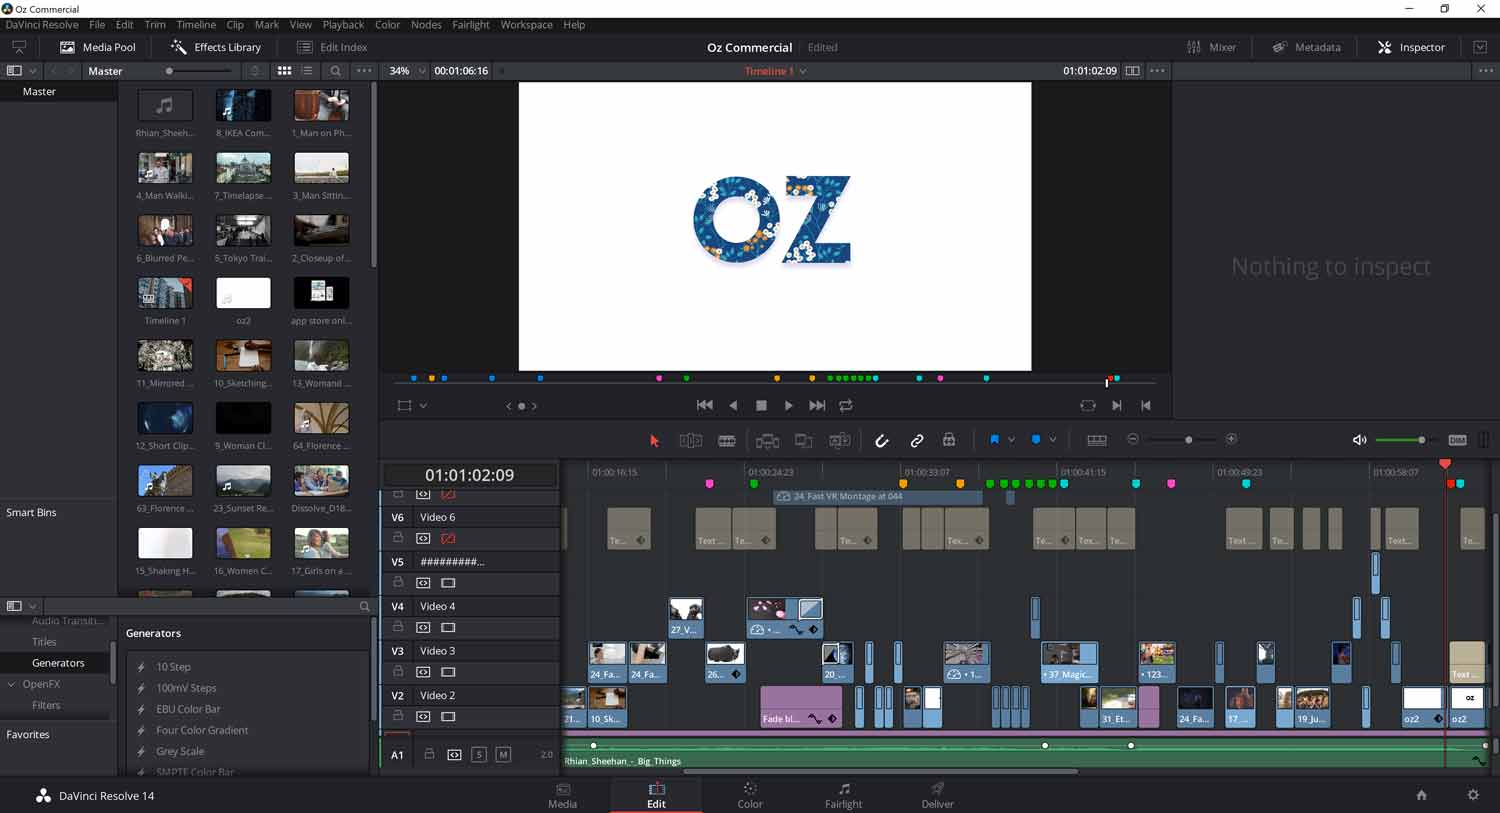 DaVinci Resolve (lite) Screenshot